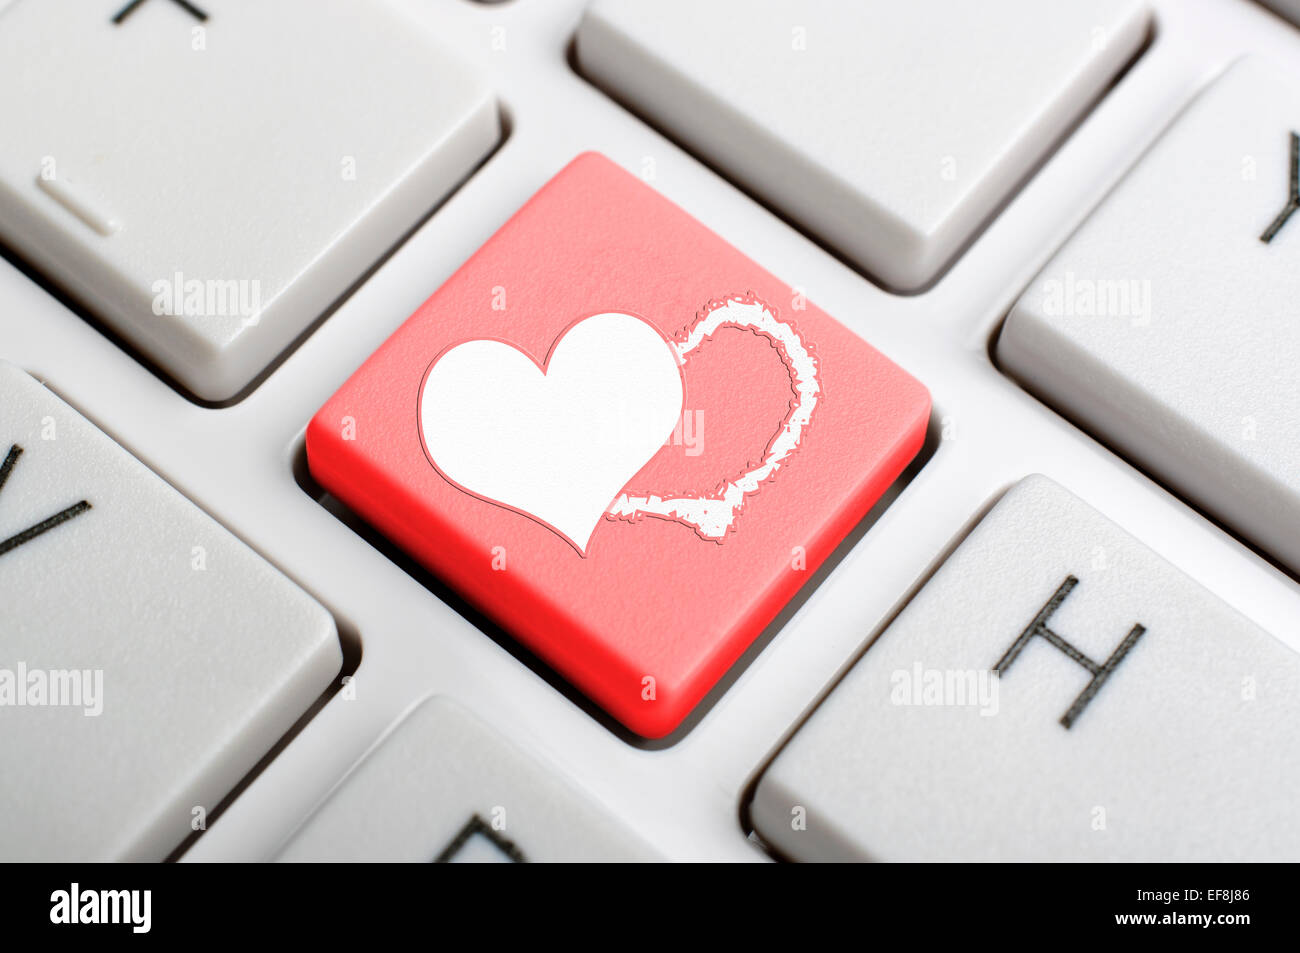 Keyboard Red Heart On Button Stock Photos Keyboard Red Heart On